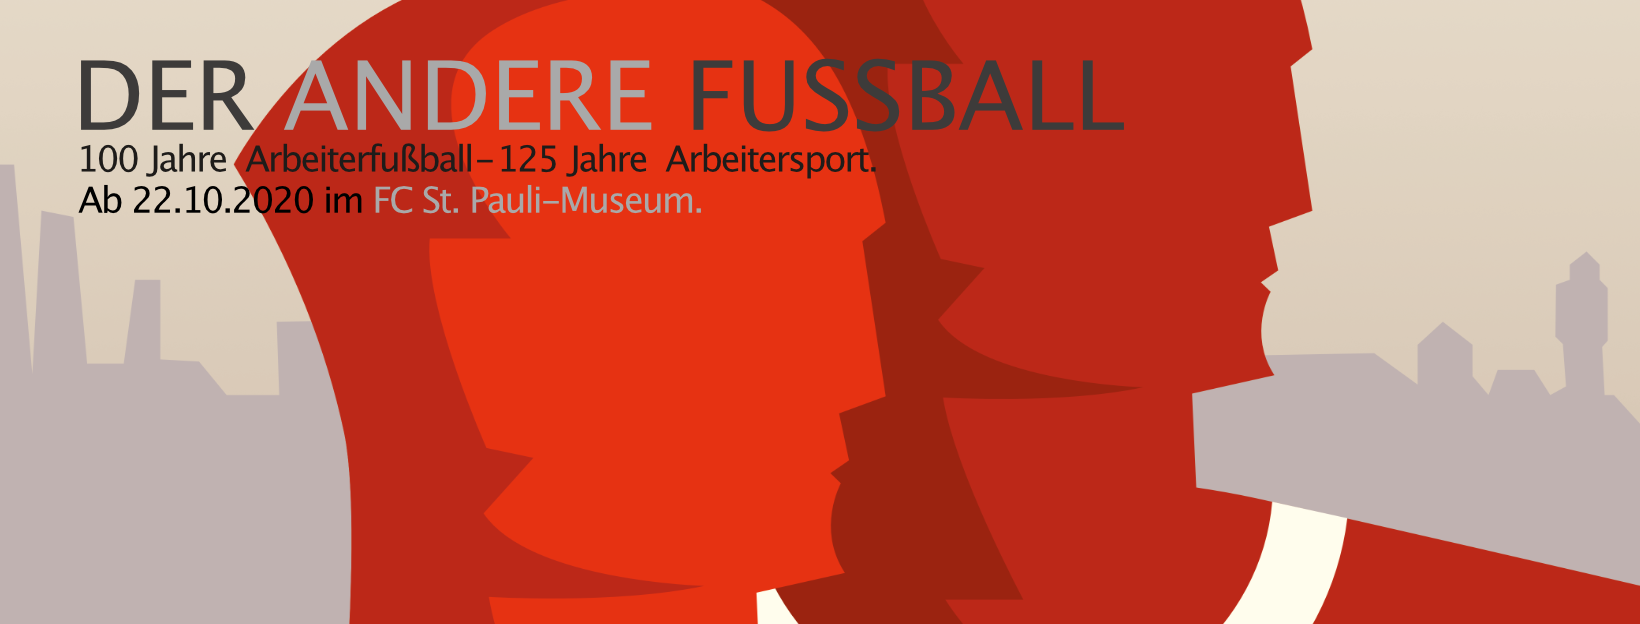 FB-Titel Arbeiterfussball mit Text